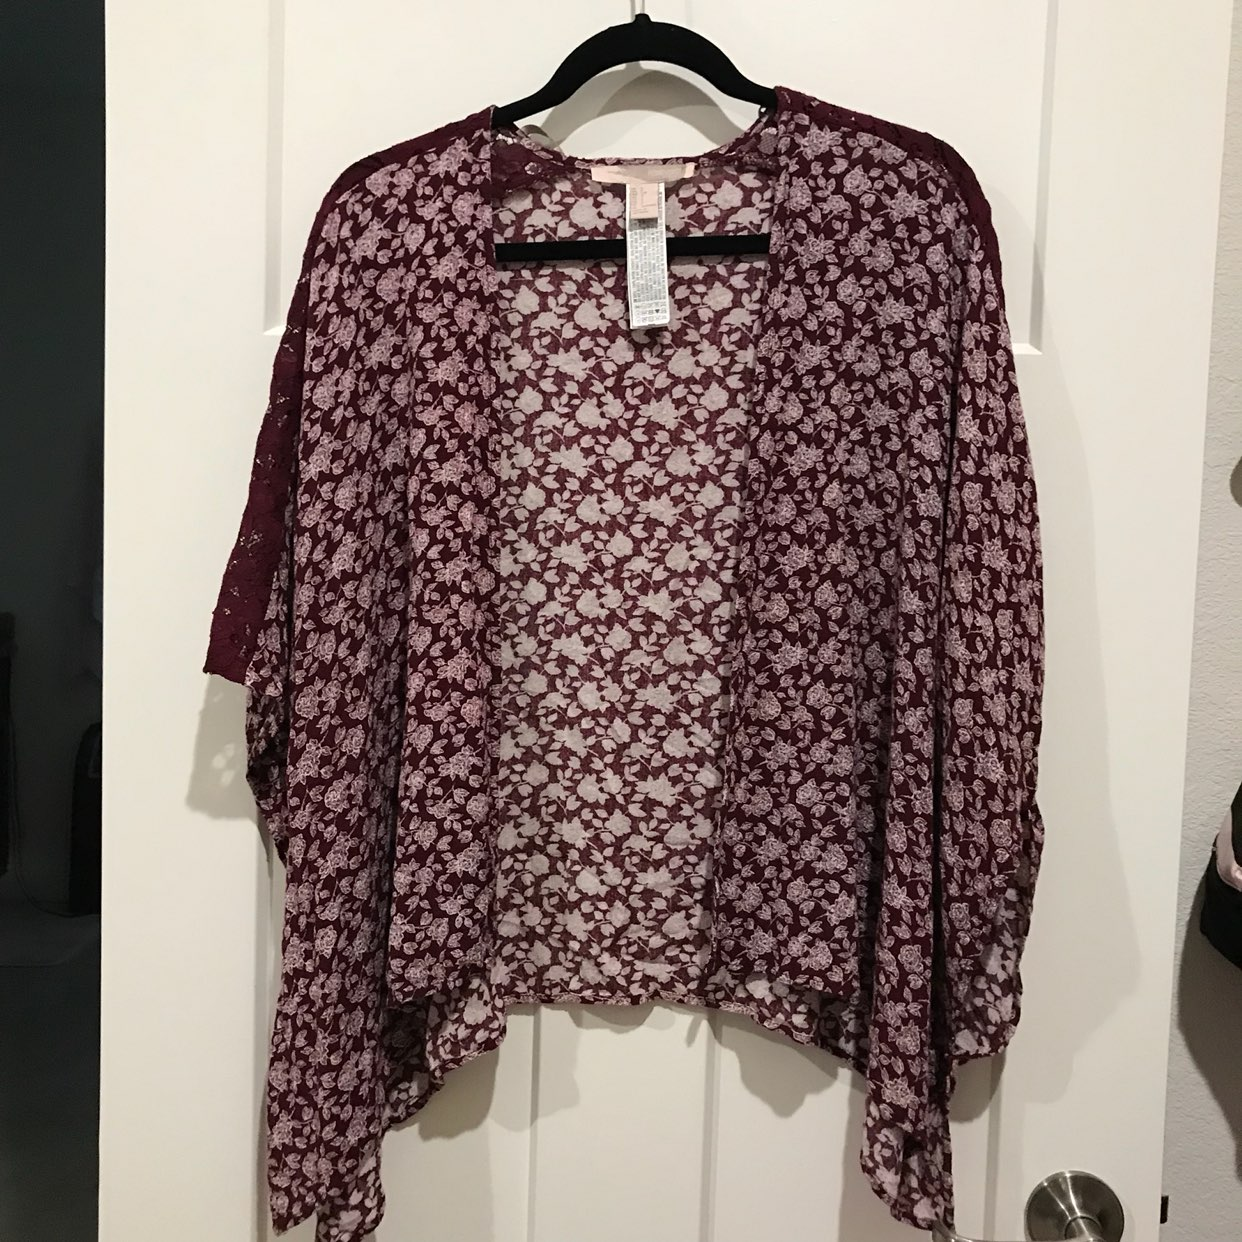 Maroon Burgundy Floral Kimono Cardigan - Mercari: BUY & SELL ...